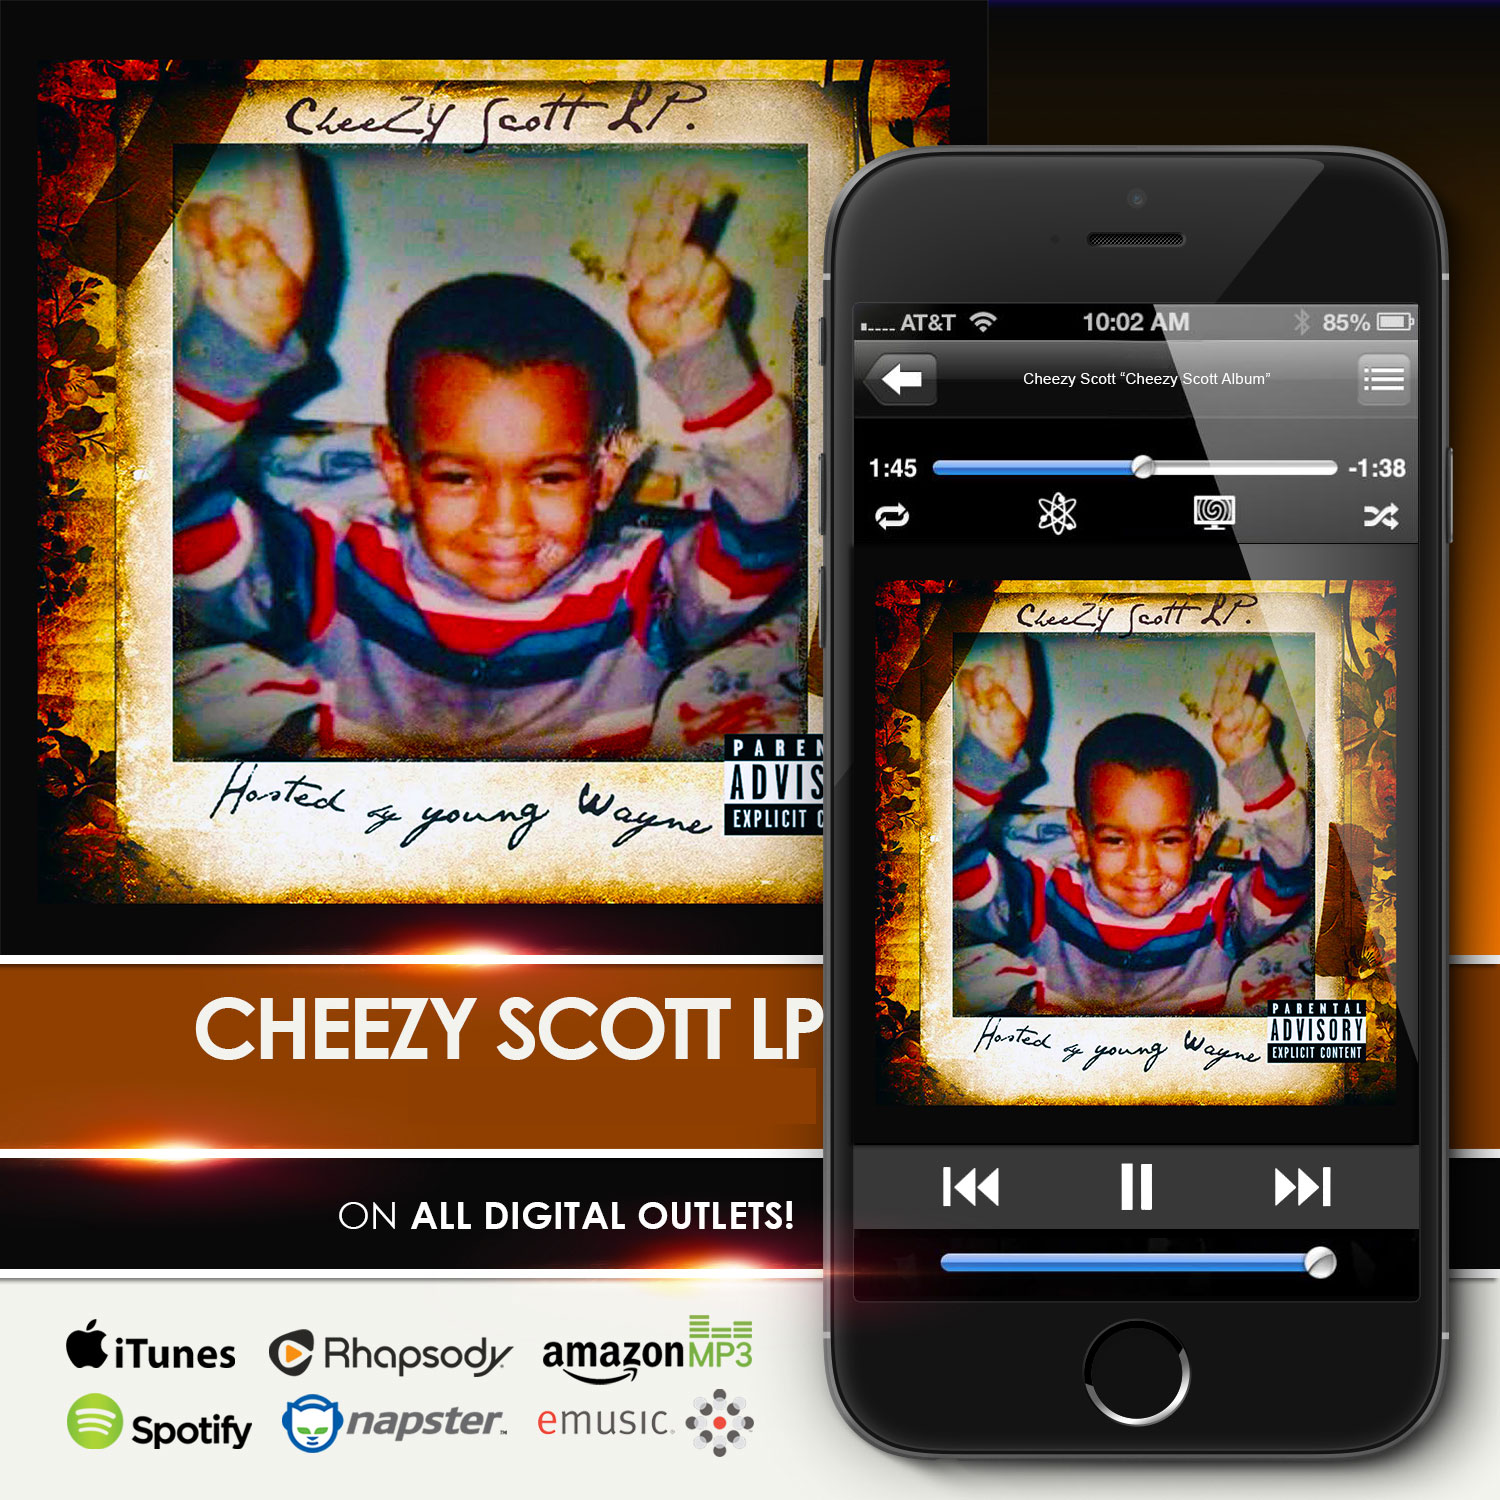 cheezy-cheezy-scott-lp-ad